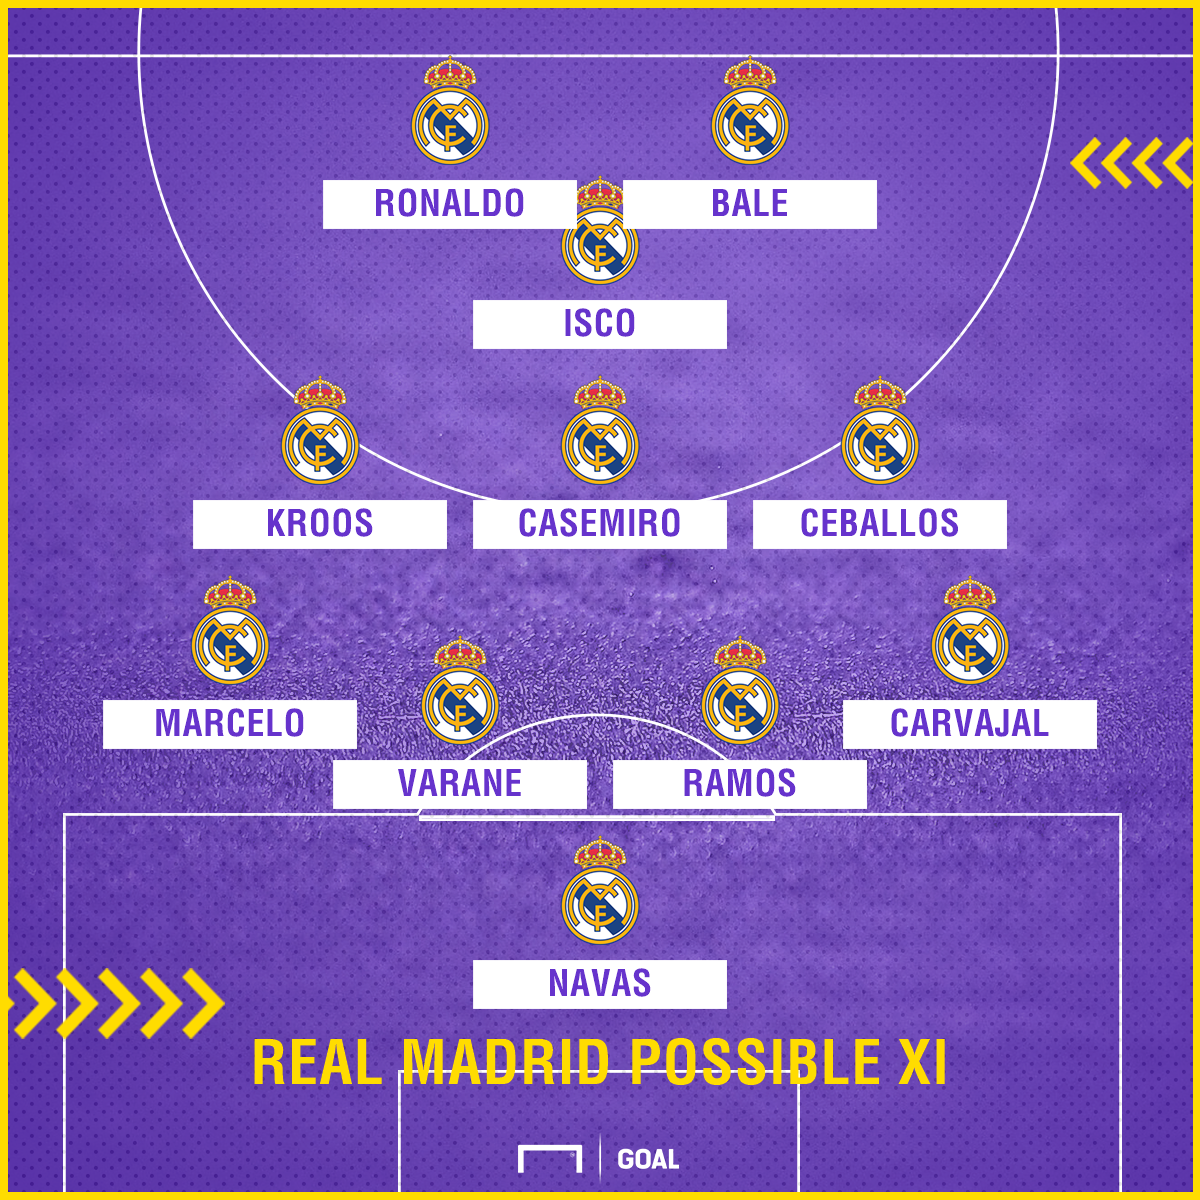 Real Madrid possible XI